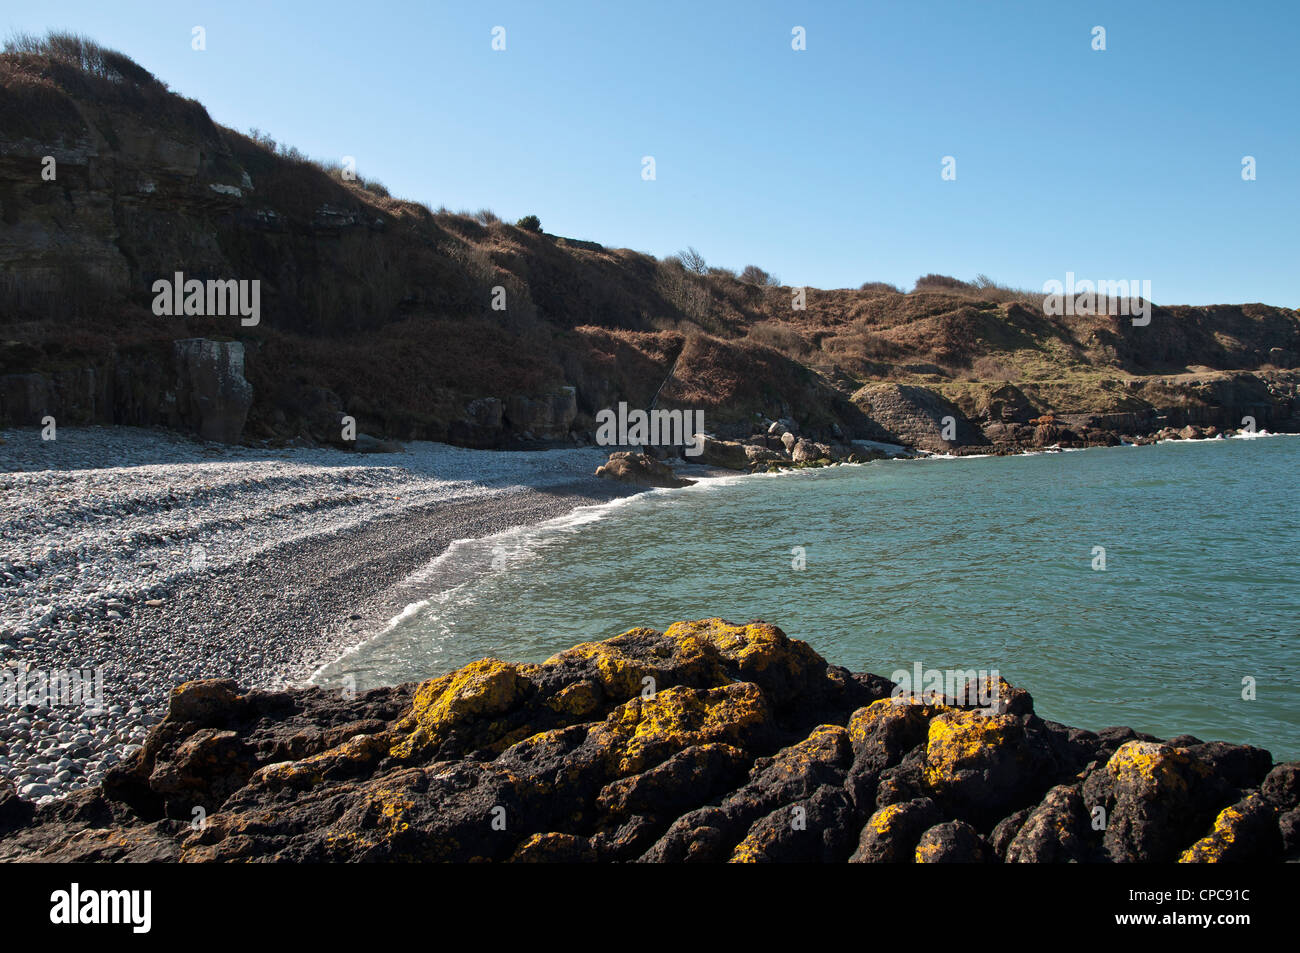 Fedw Fawr  near to Mariandyrys on the North coast of Anglesey looking towards Puffin Island. Stock Photo